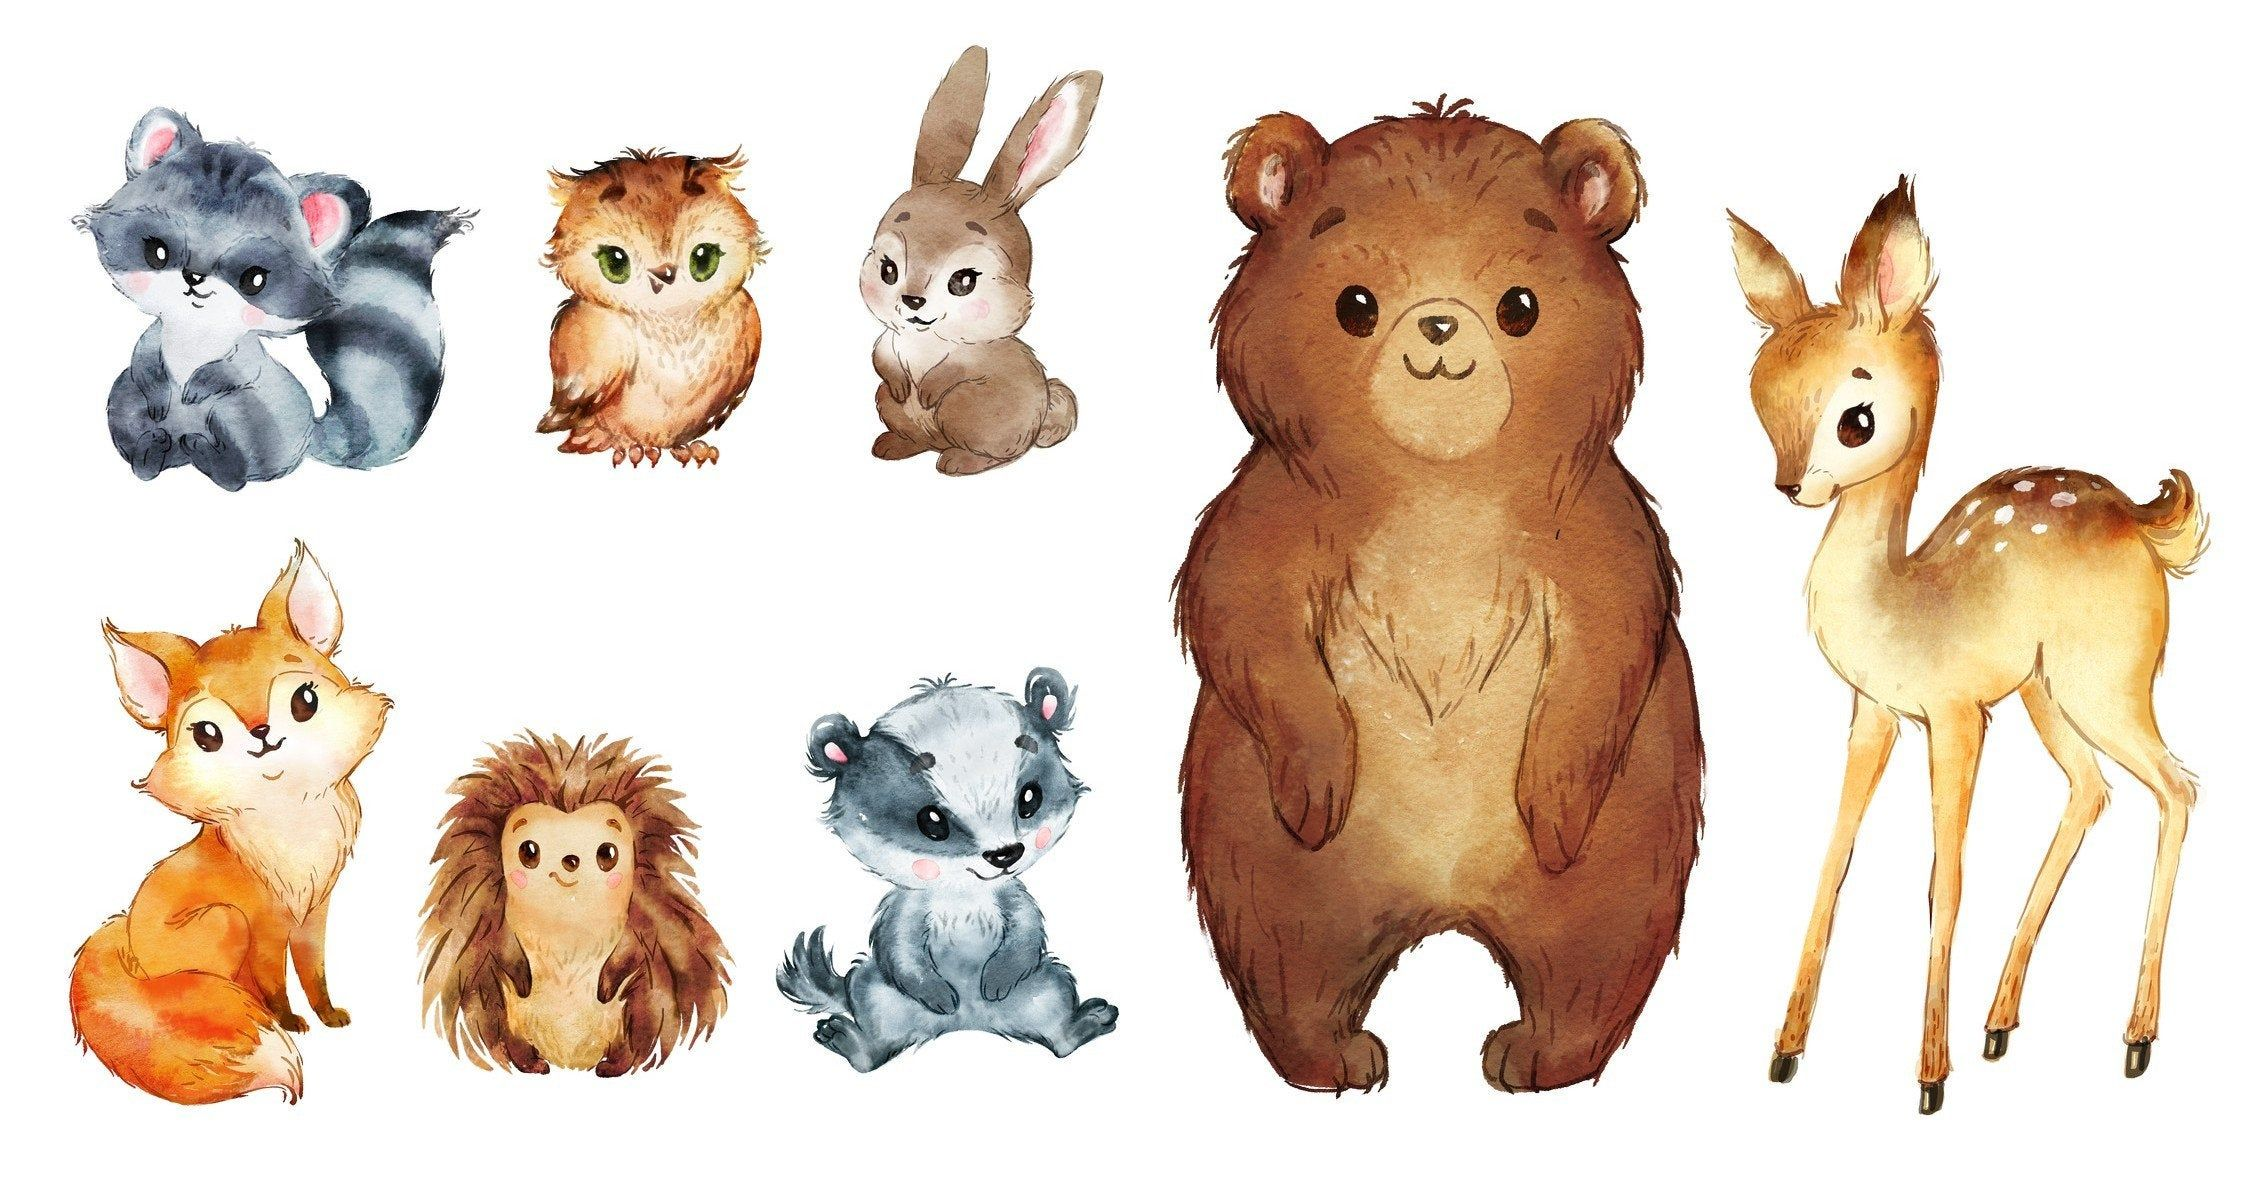 forest animals stock photos and images. Watercolor Woodland Animals Clipart Forest Animals Clip Art Etsy Forest Animals Illustration Animal Drawings Animal Illustration